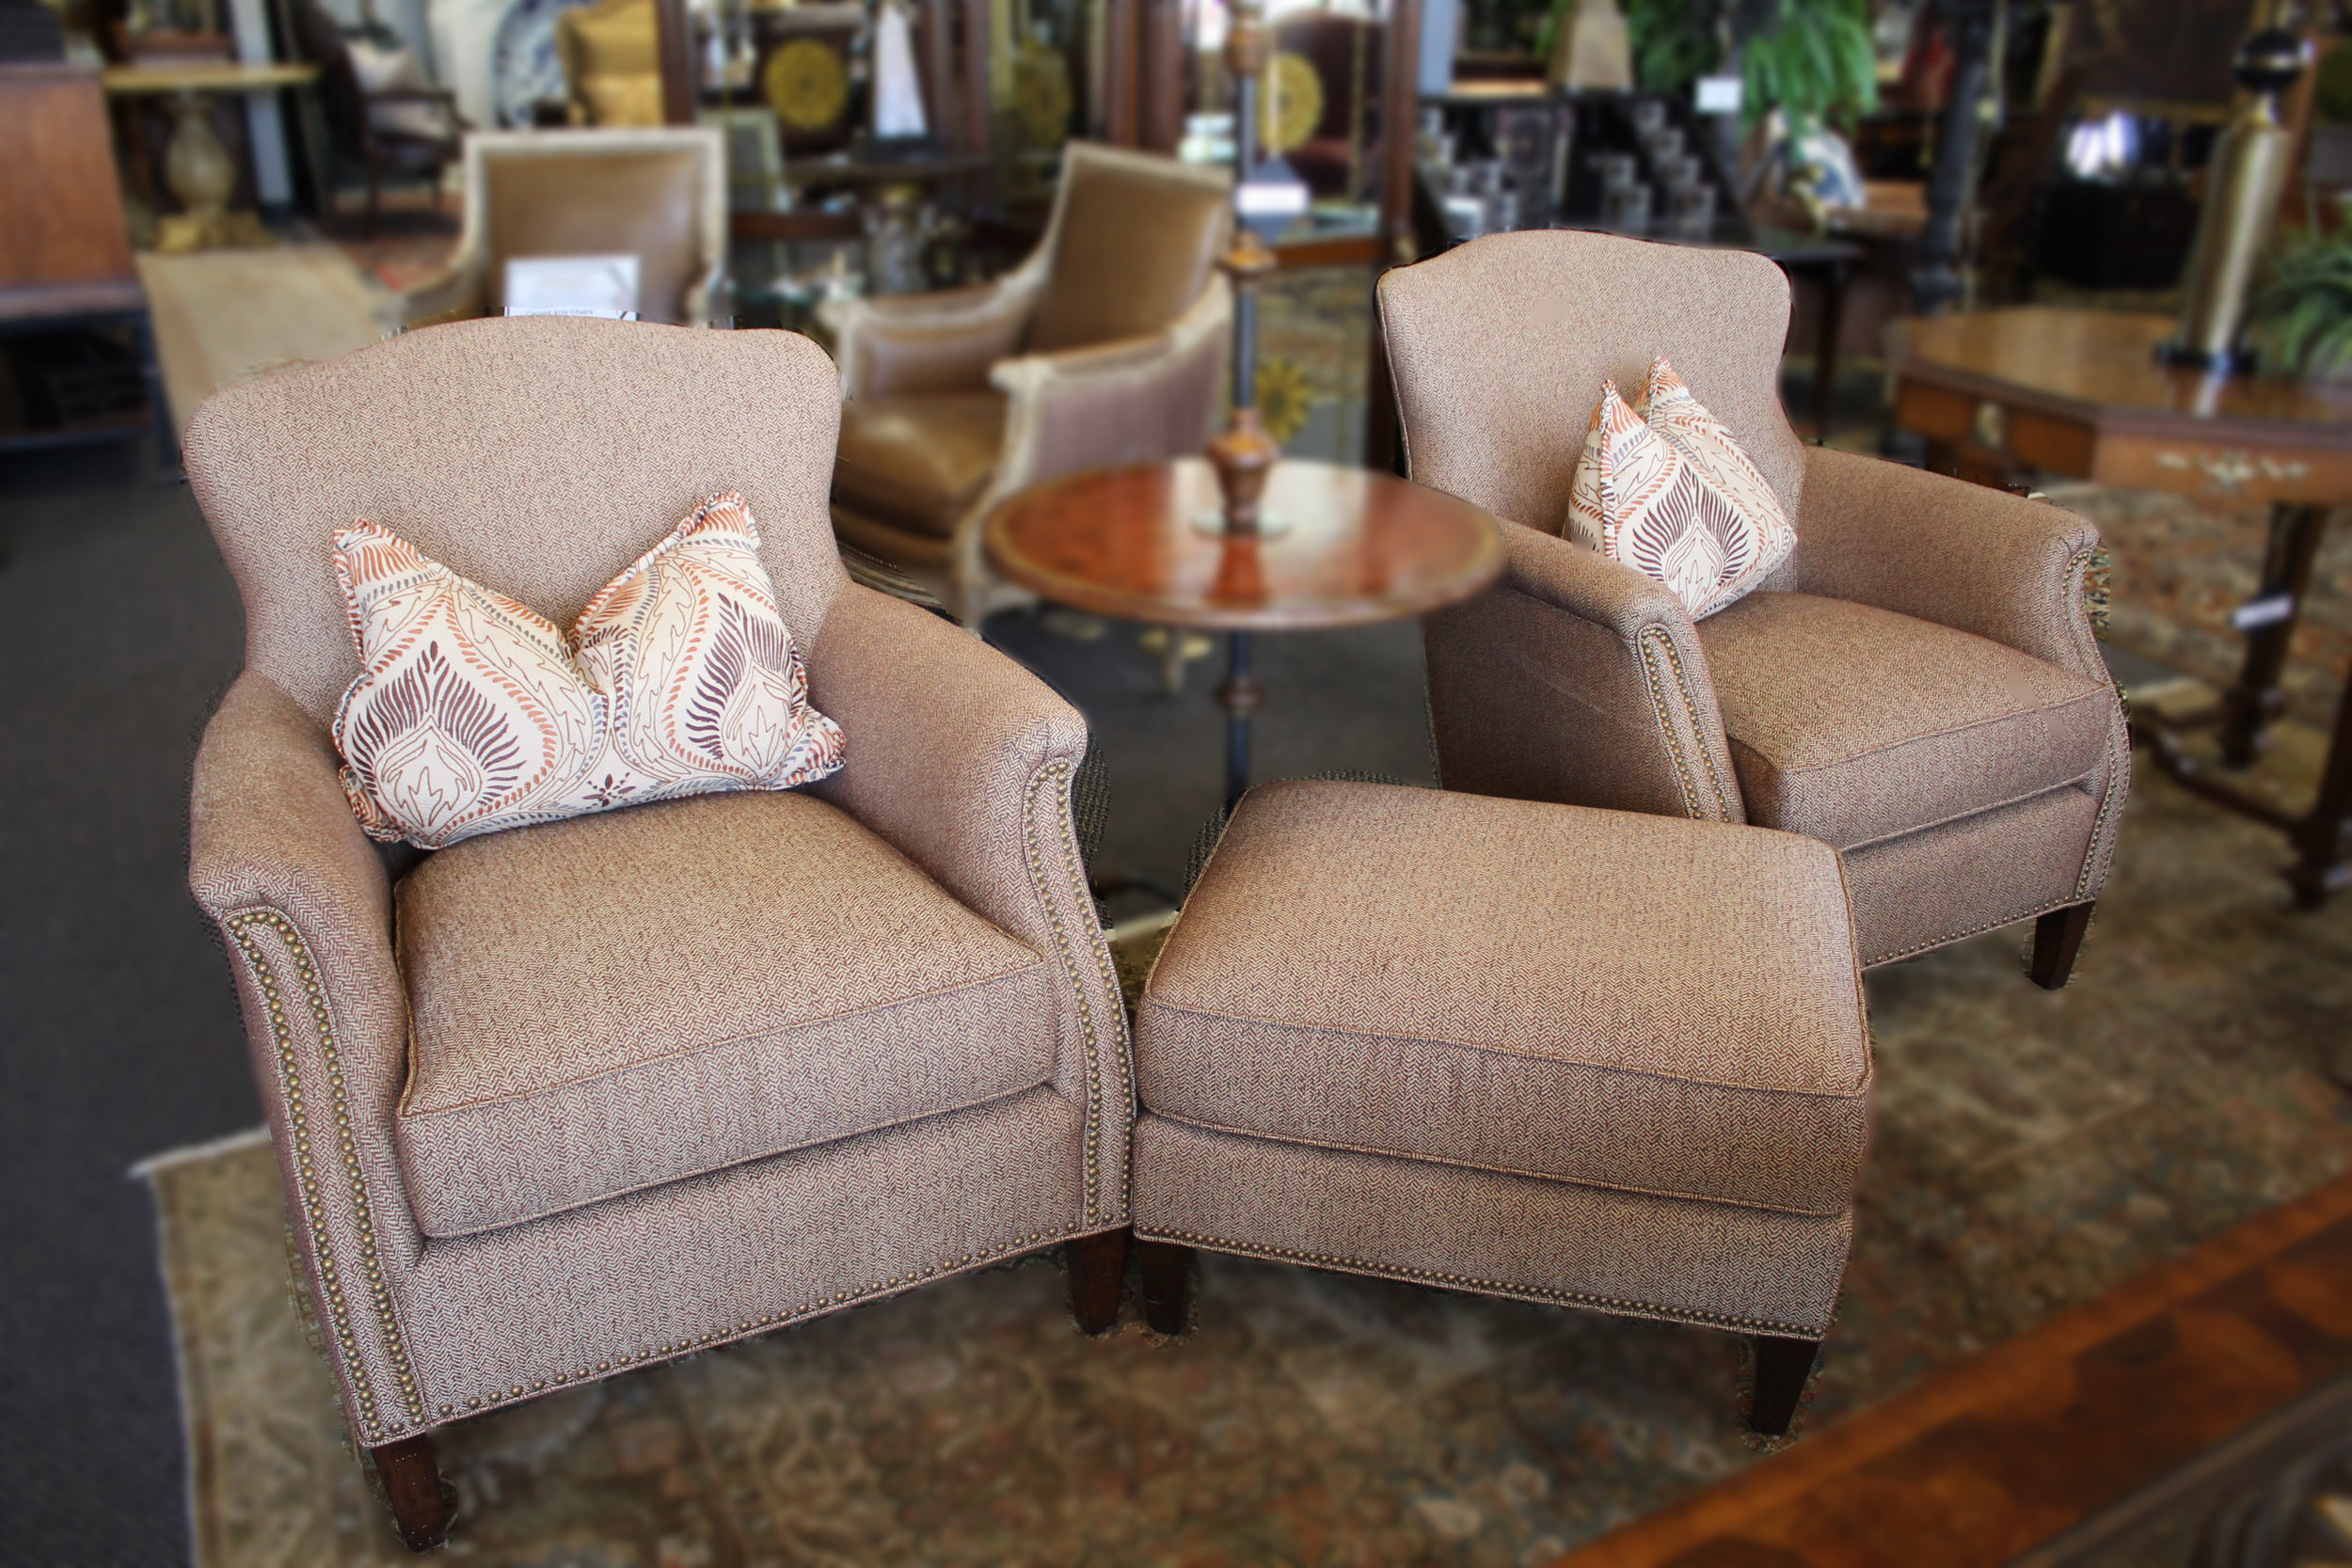 Taylor King Pair of Herringbone Chairs with Ottomans